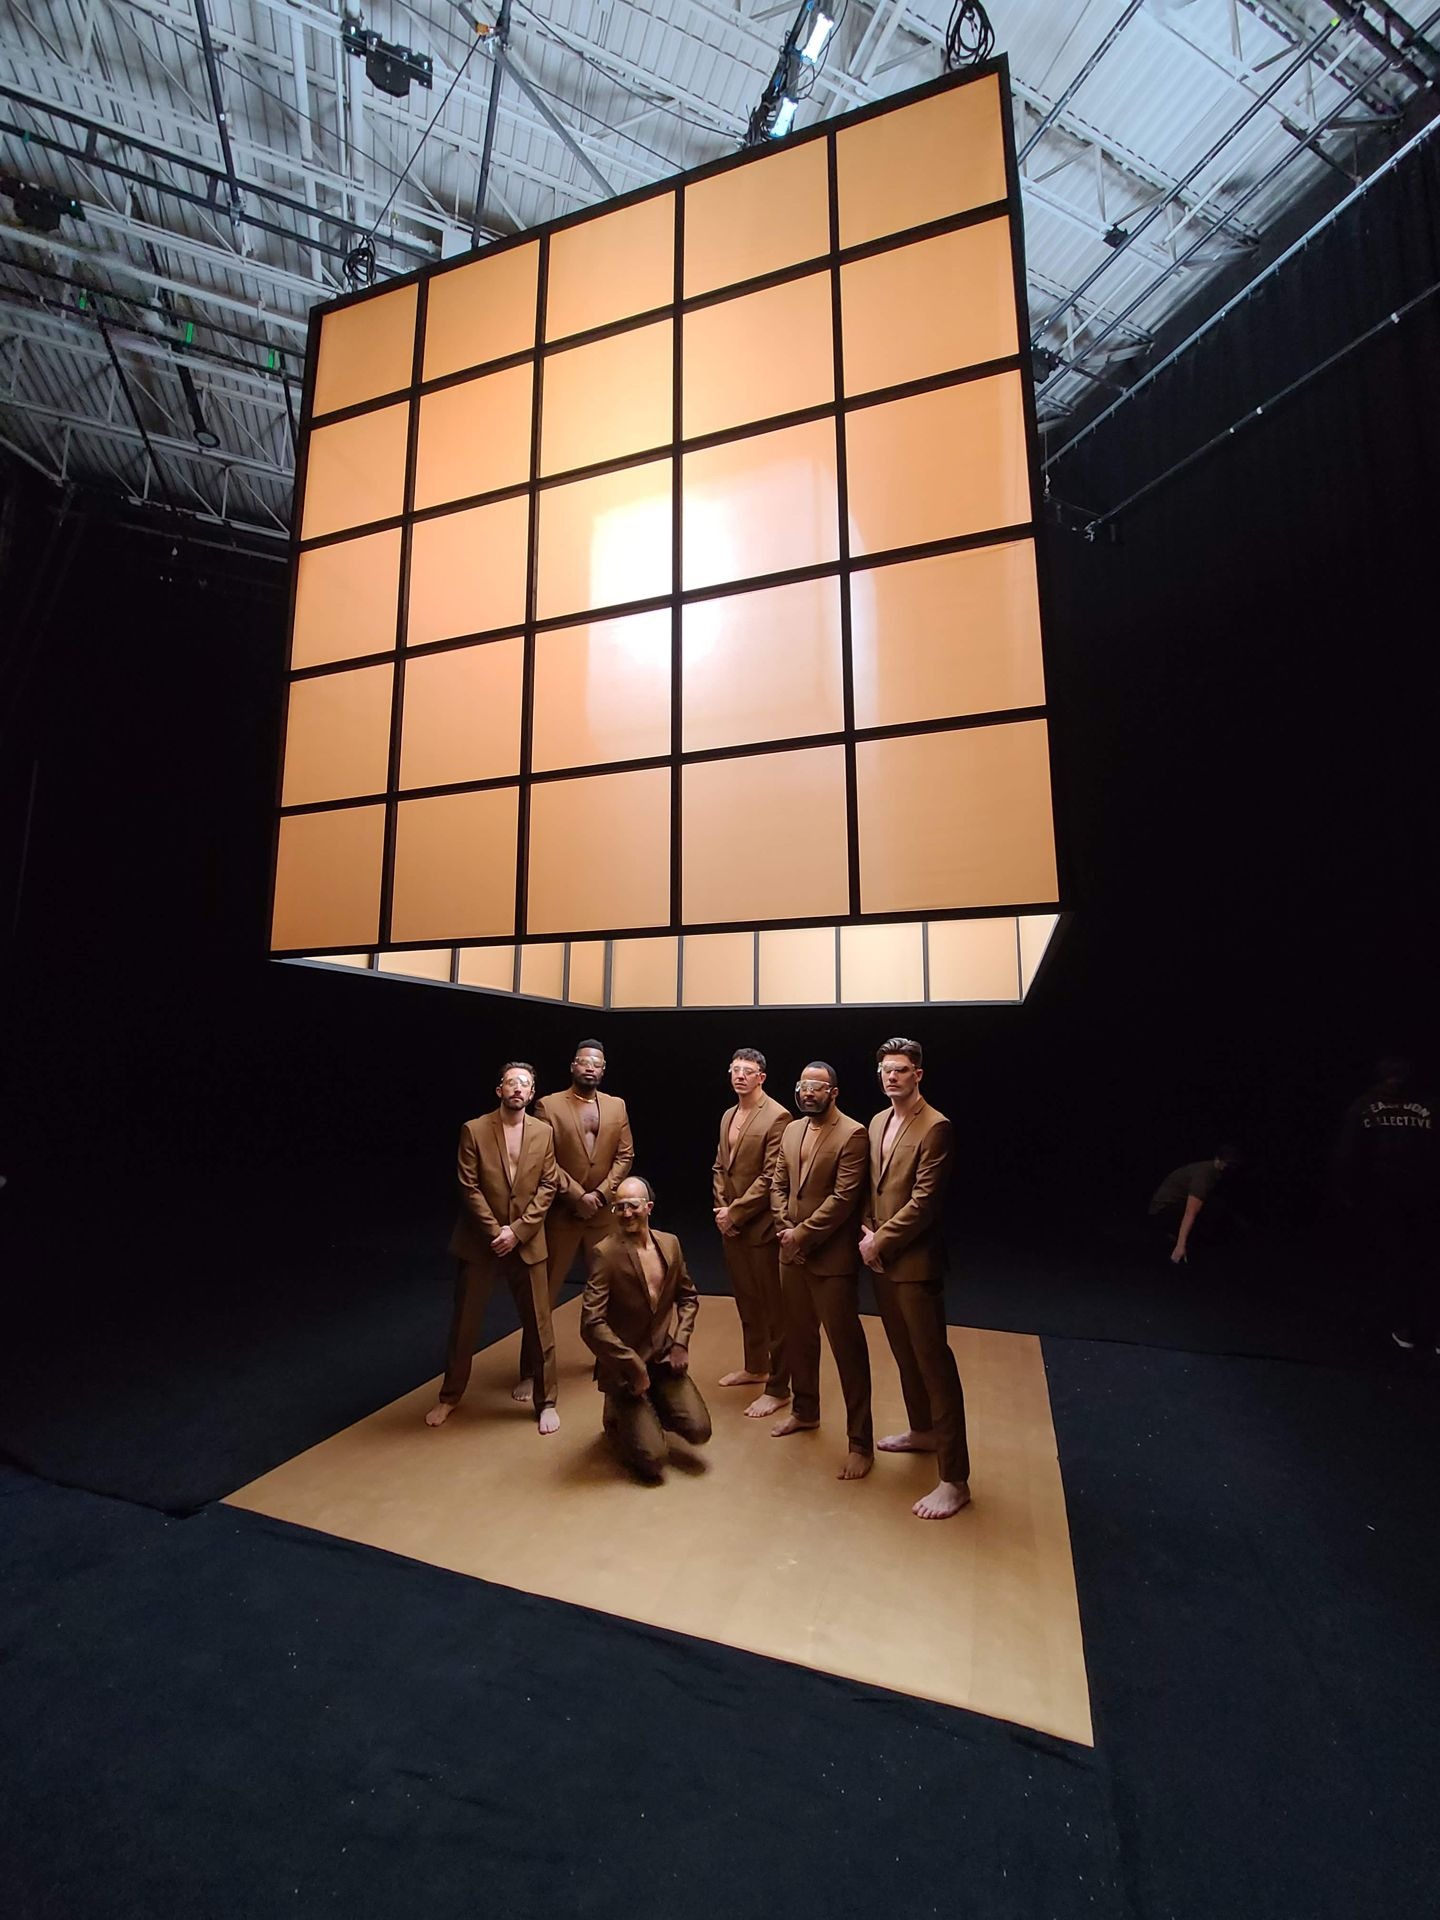 Behind the scenes photo with dancers wearing beige suits posing under a big cube which is lighted in a black studio.